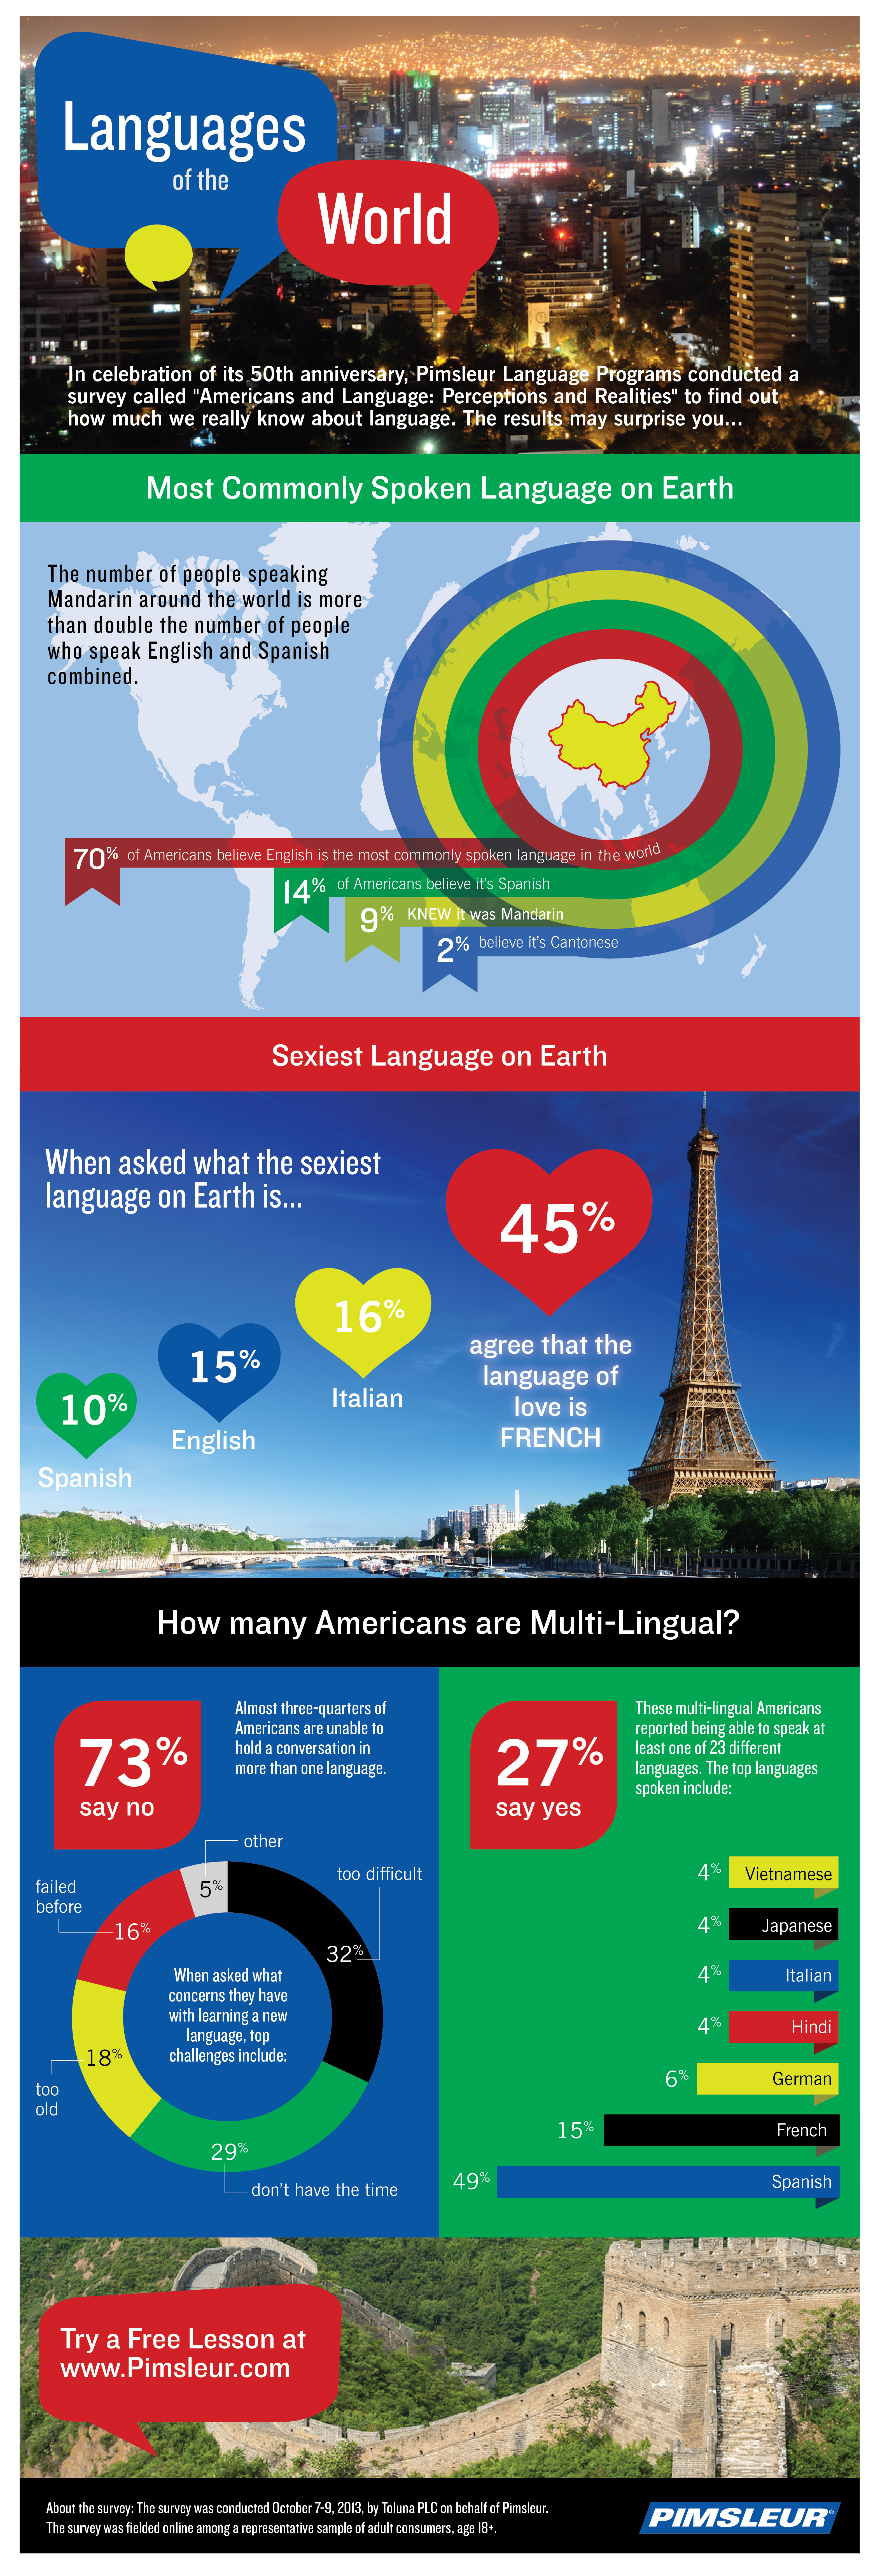 Pimsleur Infographic